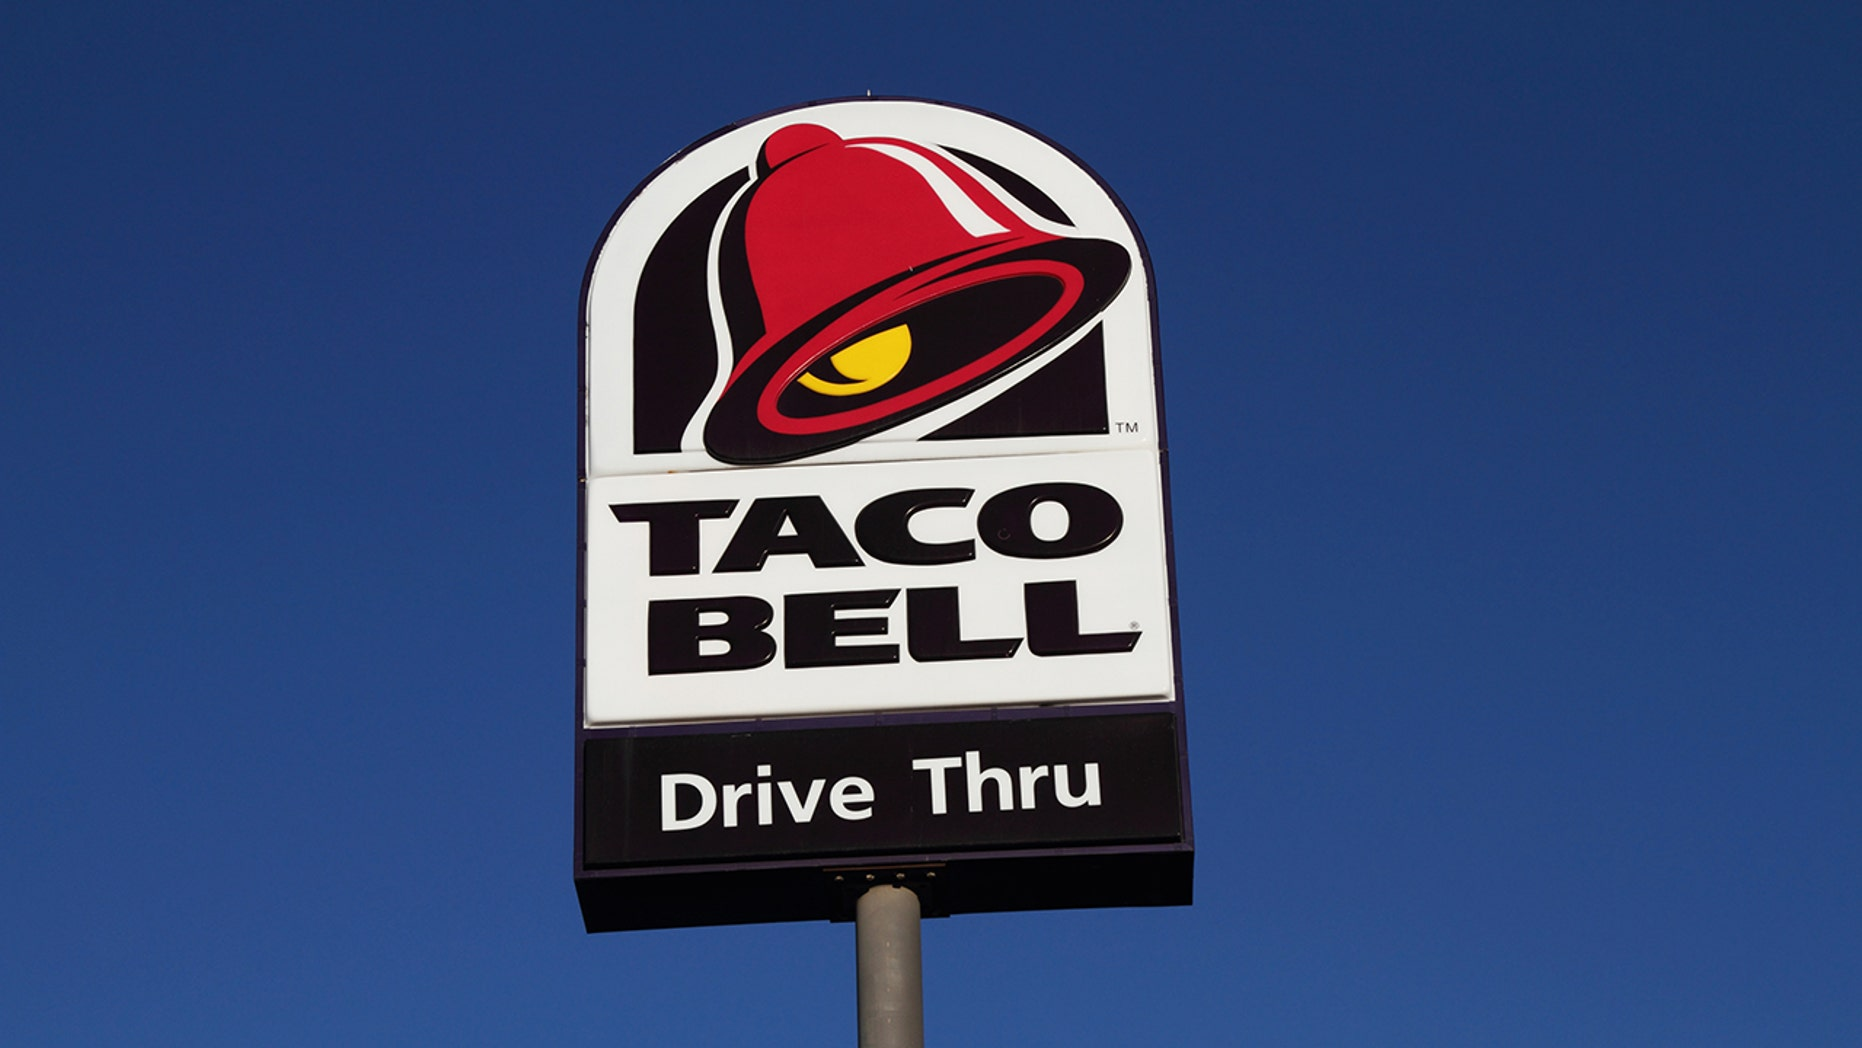 Taco Bell is spicing things up with new restaurants globally.